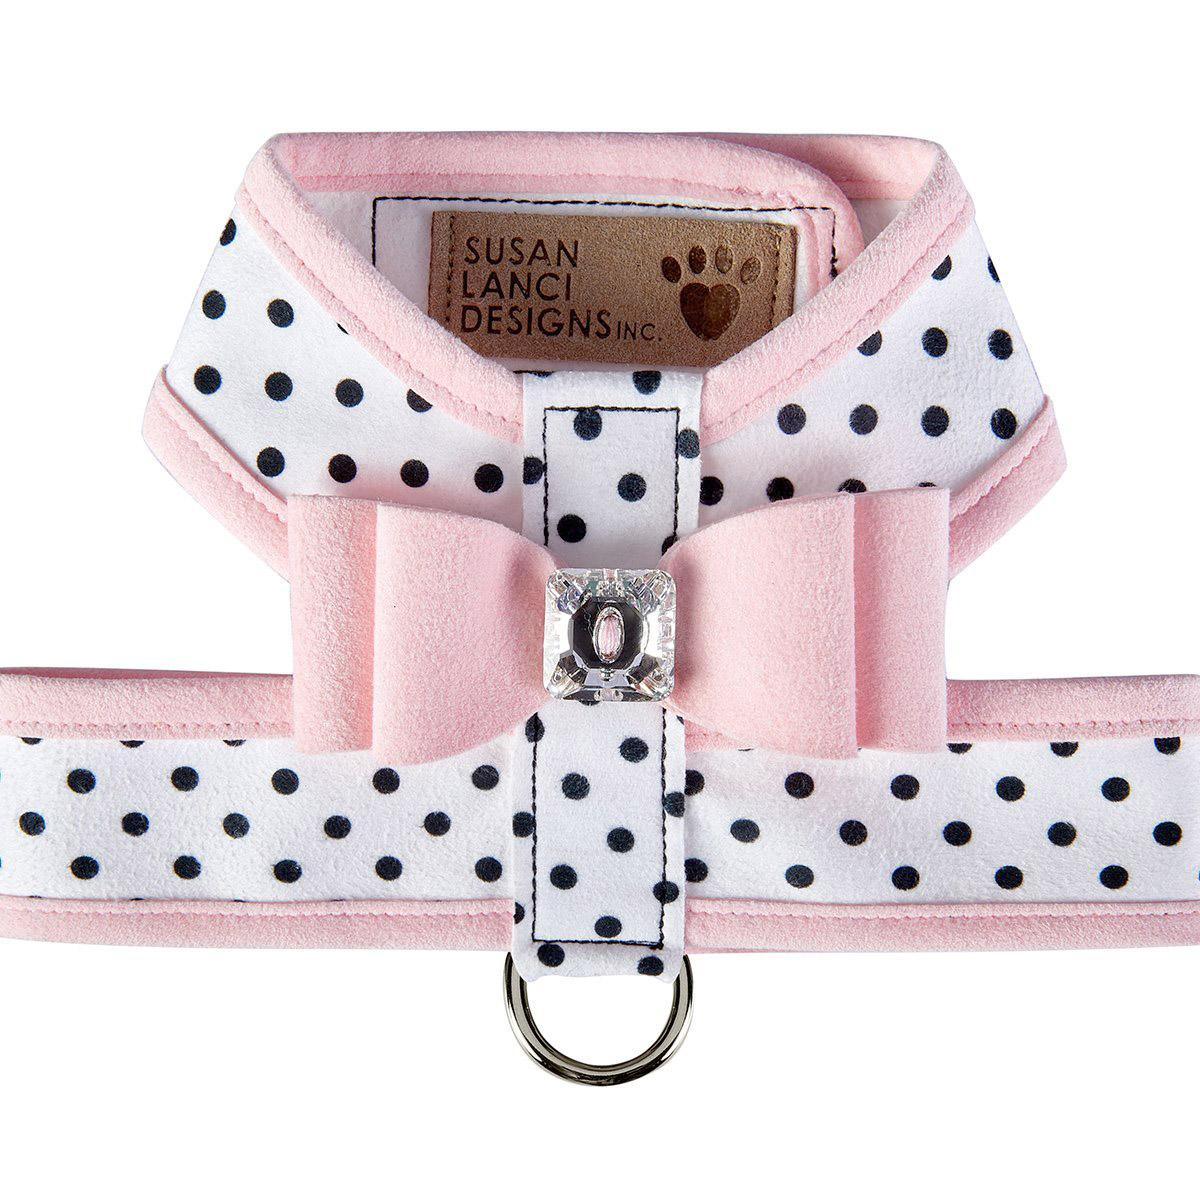 Polka Dot Tinkie Dog Harness with Big Bow and Trim by Susan Lanci - Puppy Pink